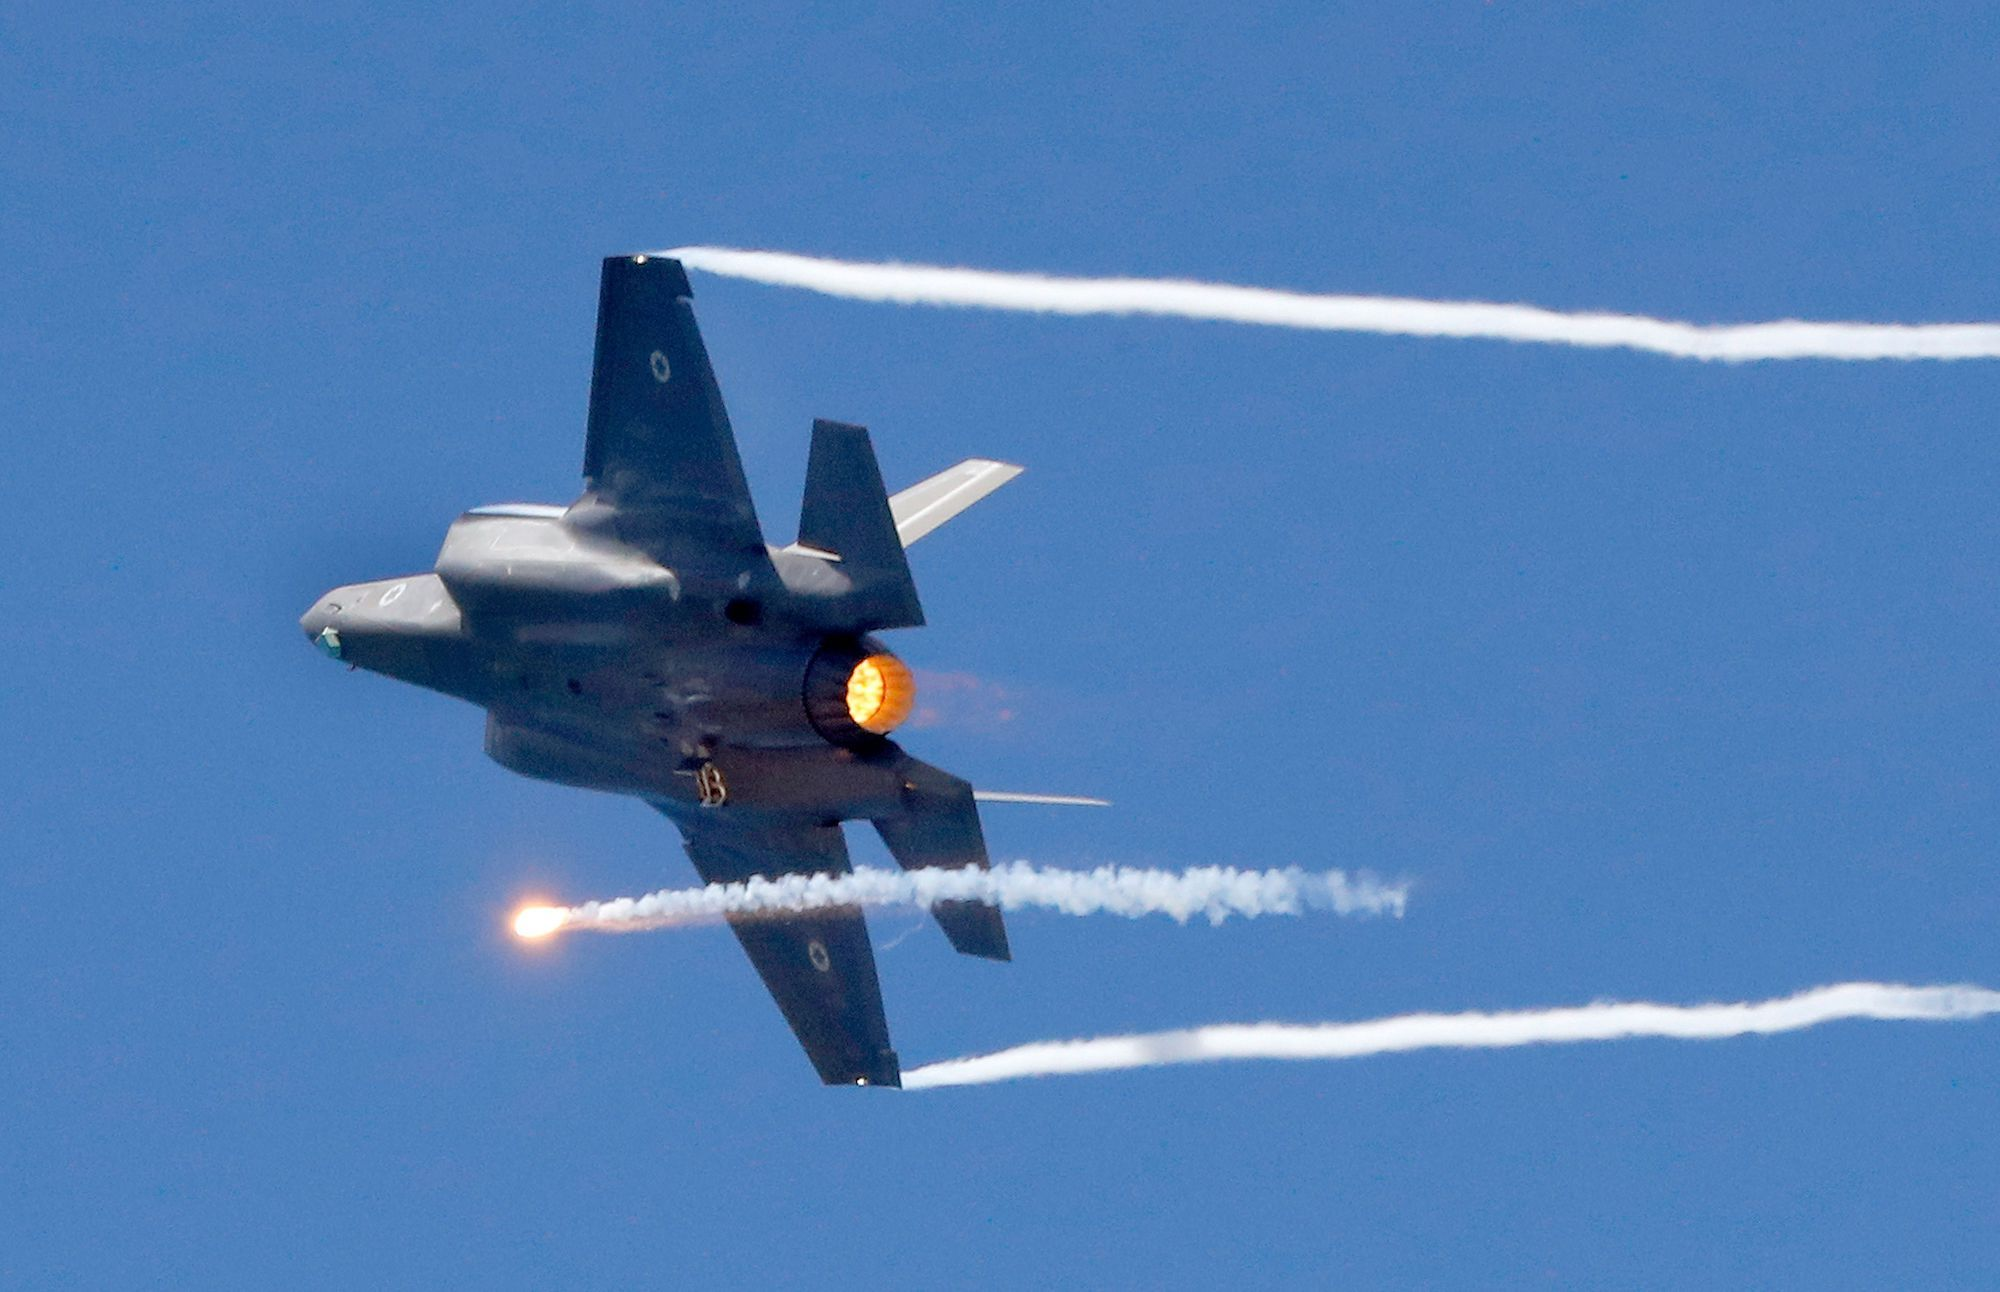 The F-35 Continues to Amaze and Astound in Its Ability to Be Everything Except a Functioning Airplane